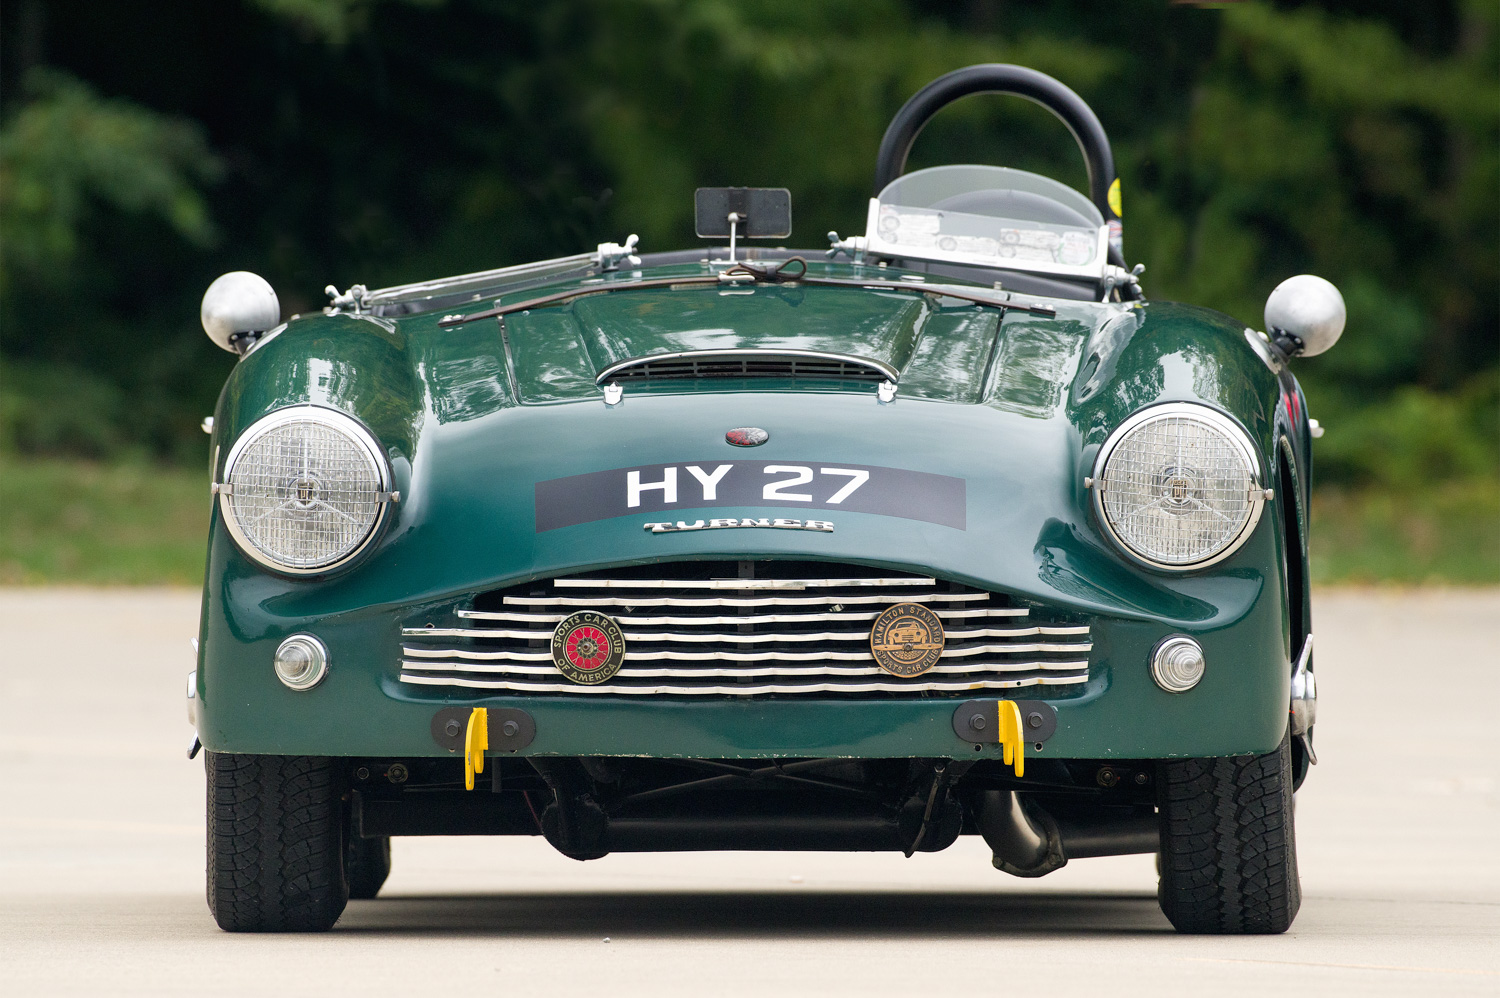 The HY 27 designation on the hood is a UK vehicle registration number. The car was driven in England in the 1970s.